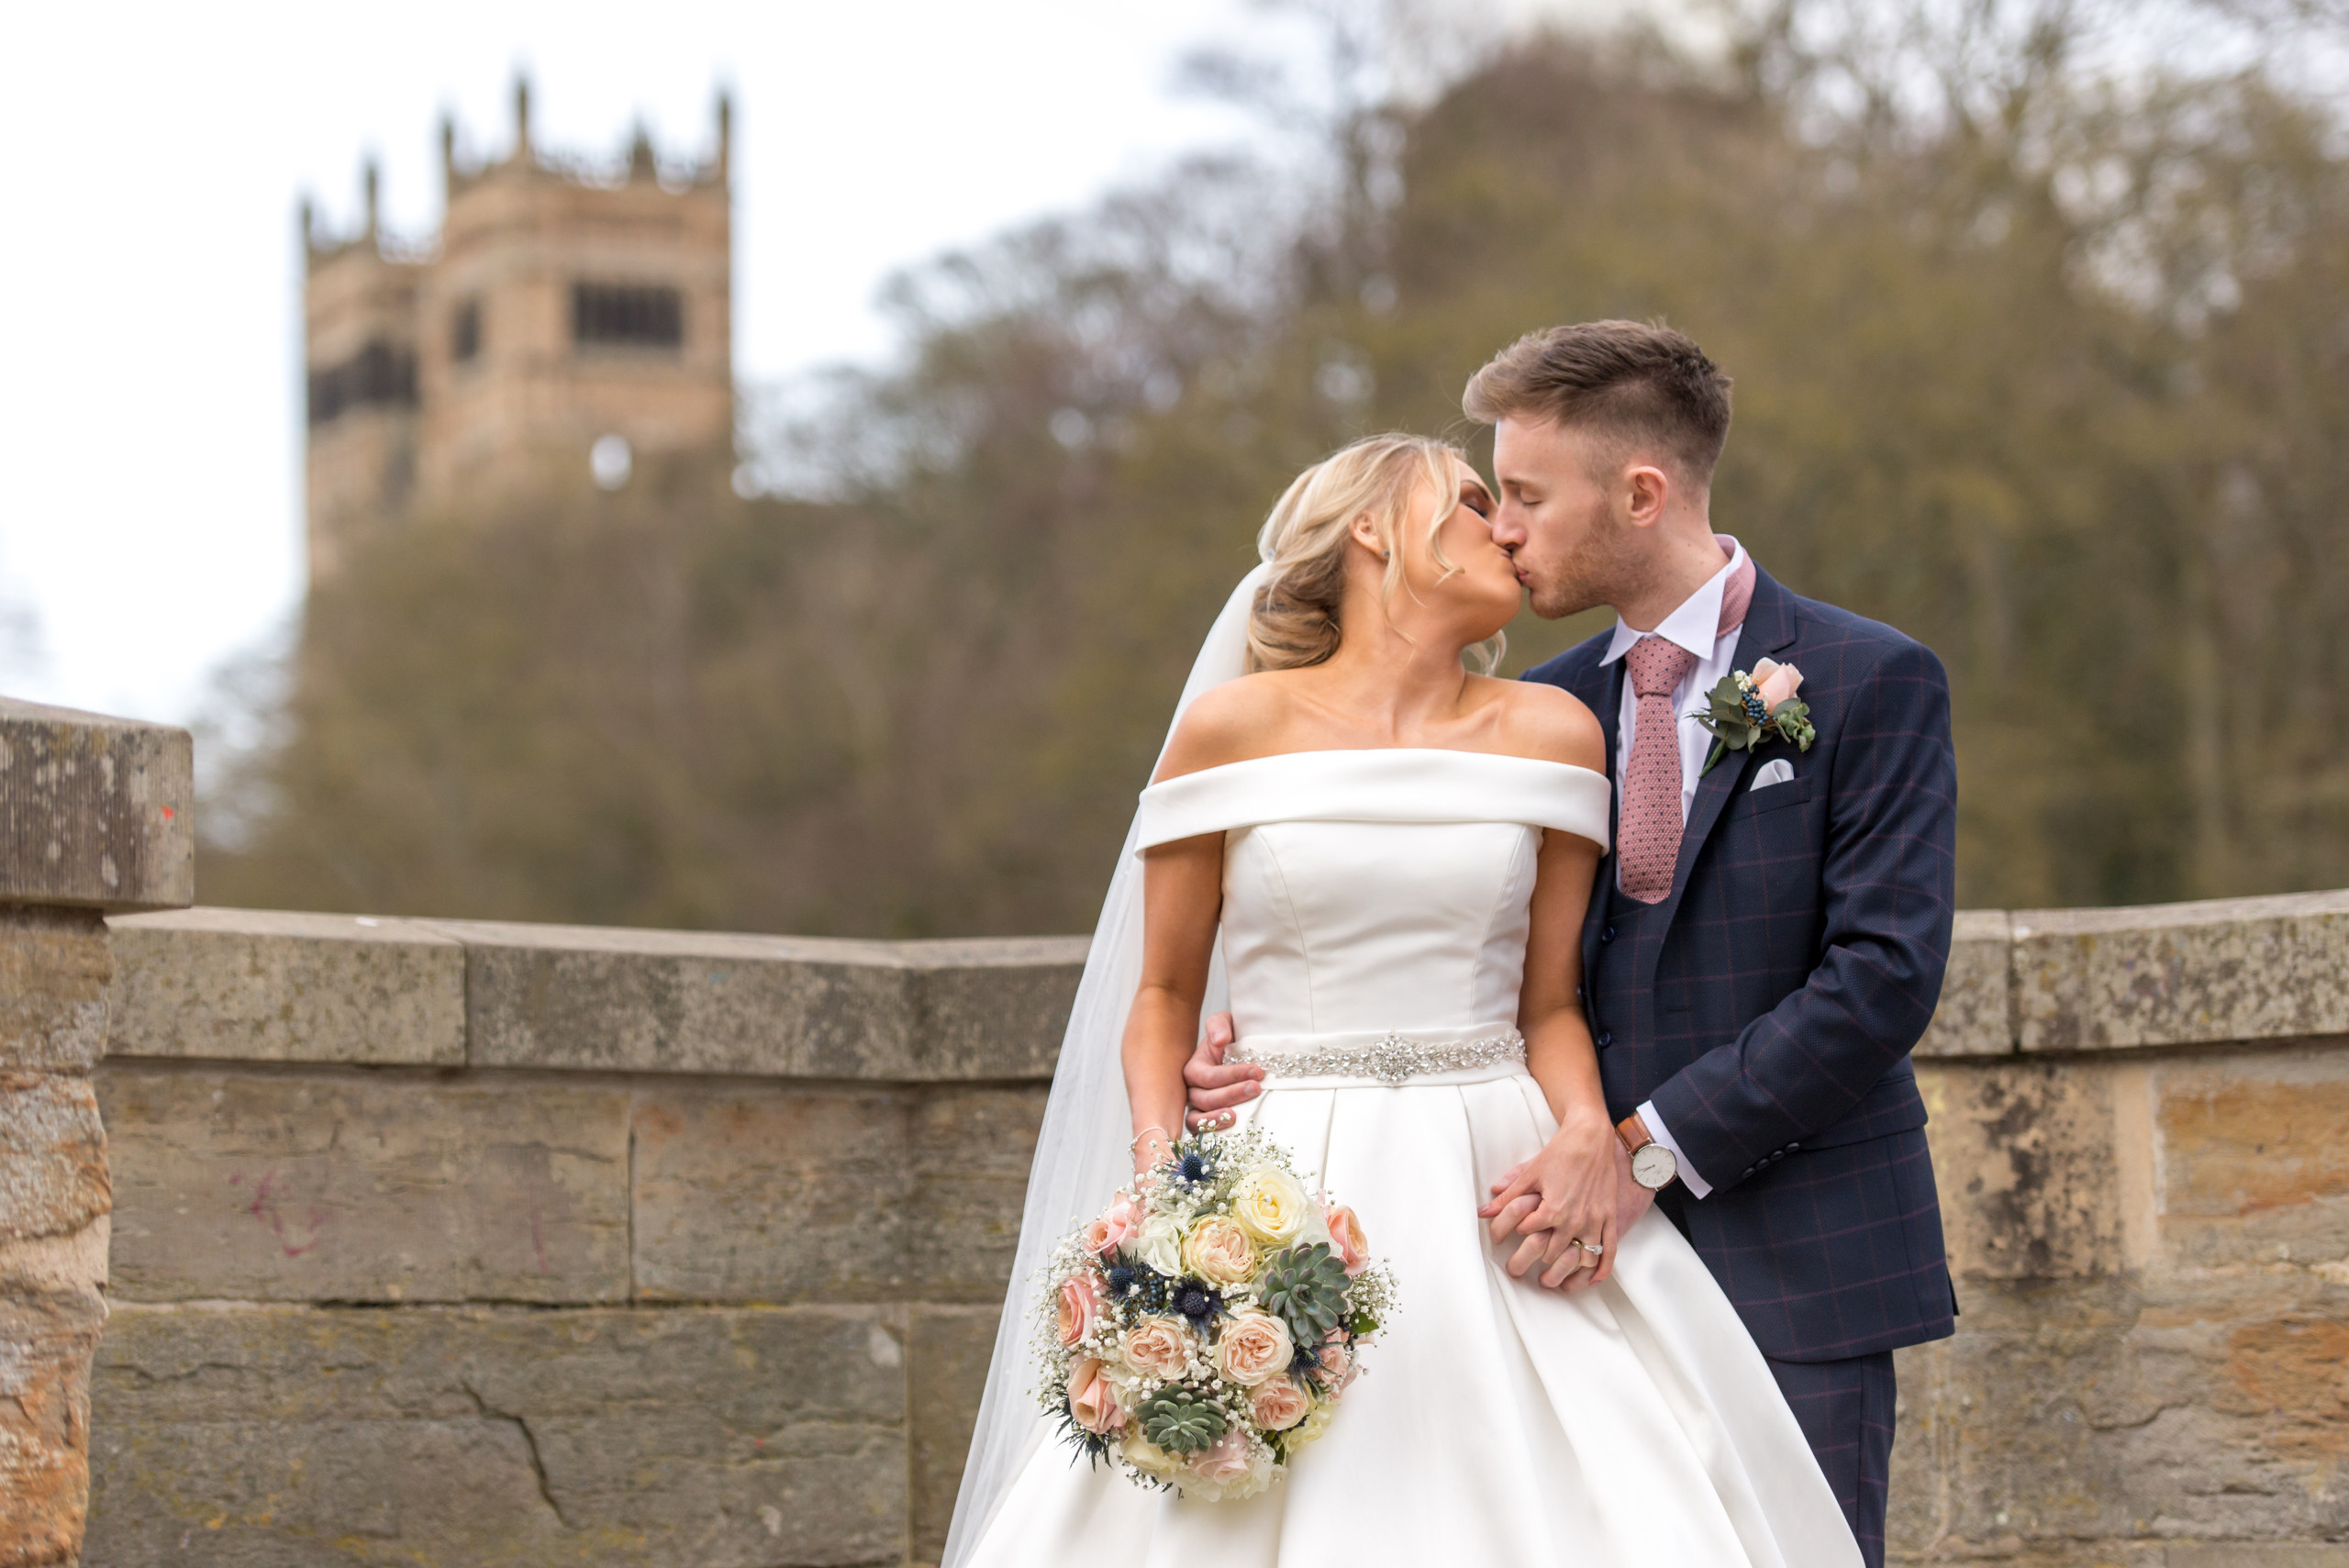 Wedding photography of bride and groom kiss on wedding day on Prebends Bridge in Durham with Durham Cathedral in background